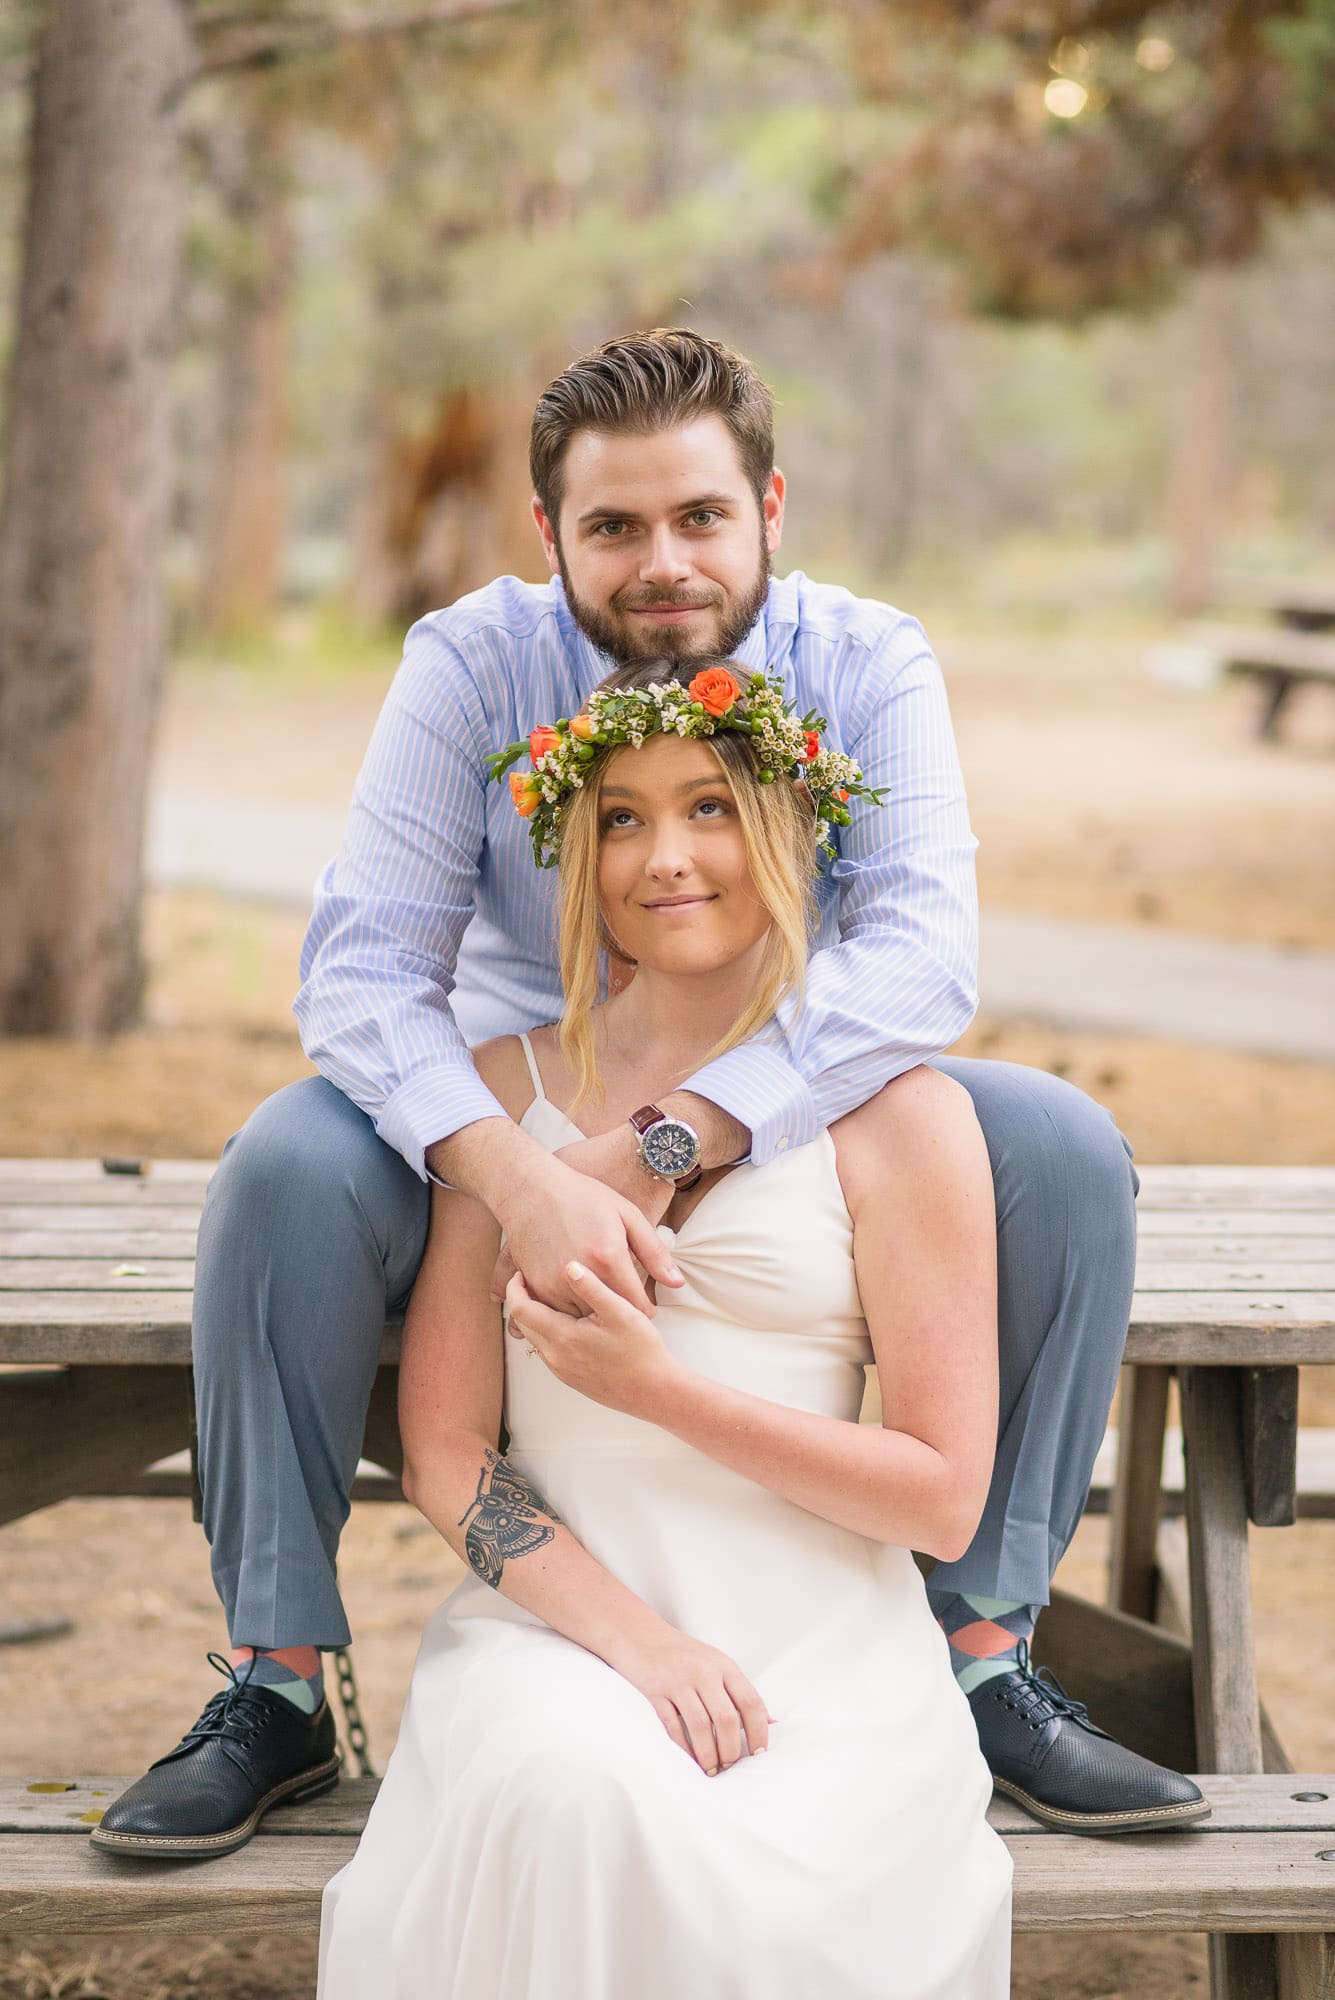 044_Alan_and_Heidi_Kensey_Josh_Big_Bear_Elopement